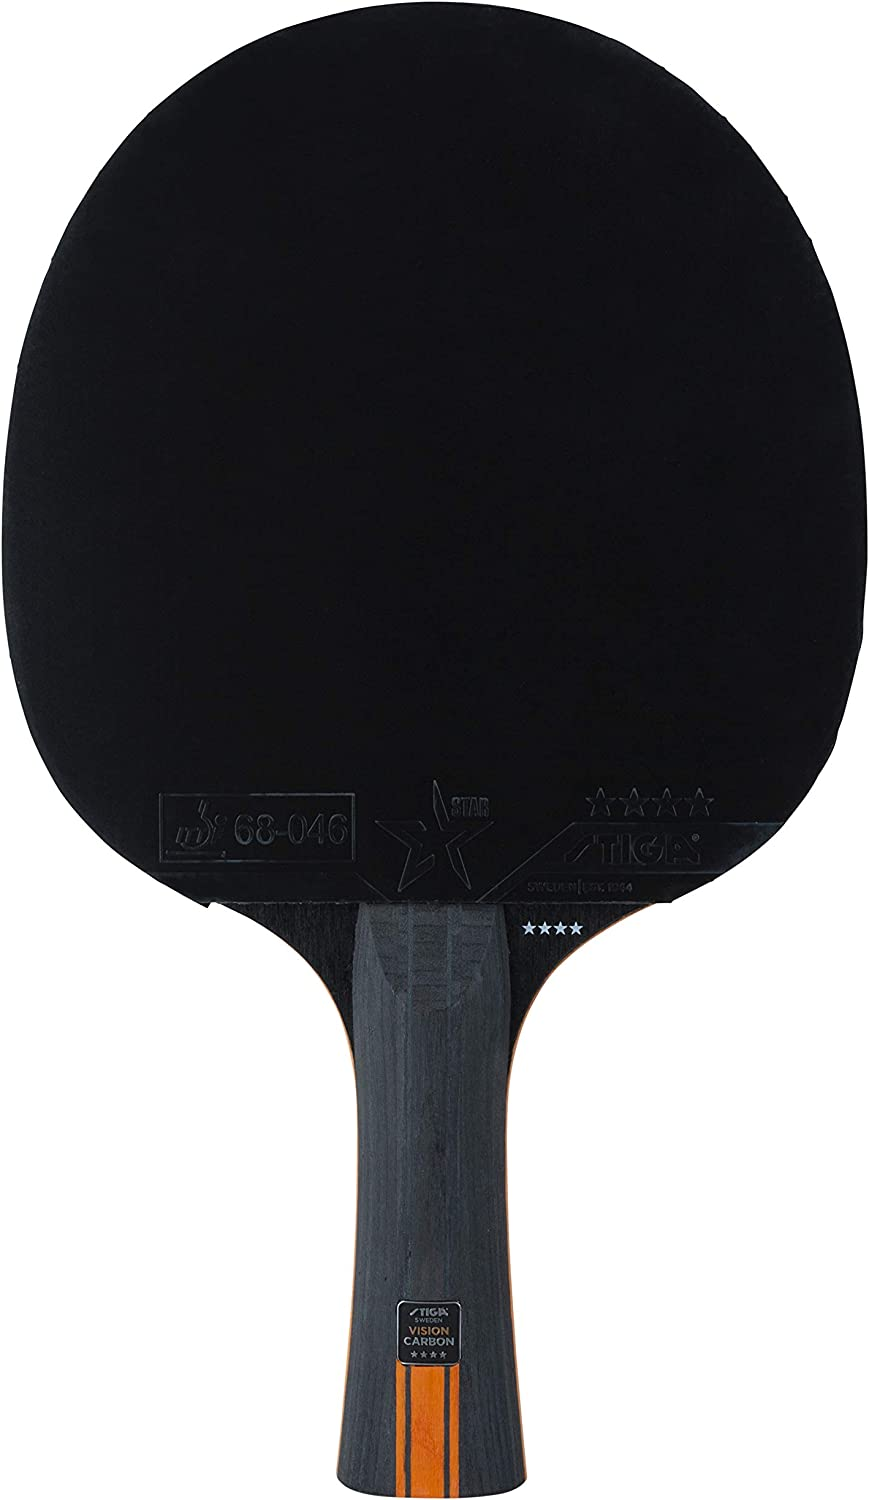 Stiga 4-Star Vision Carbon Palas de Ping Pong, Unisex-Adult, Black/Red, One Size